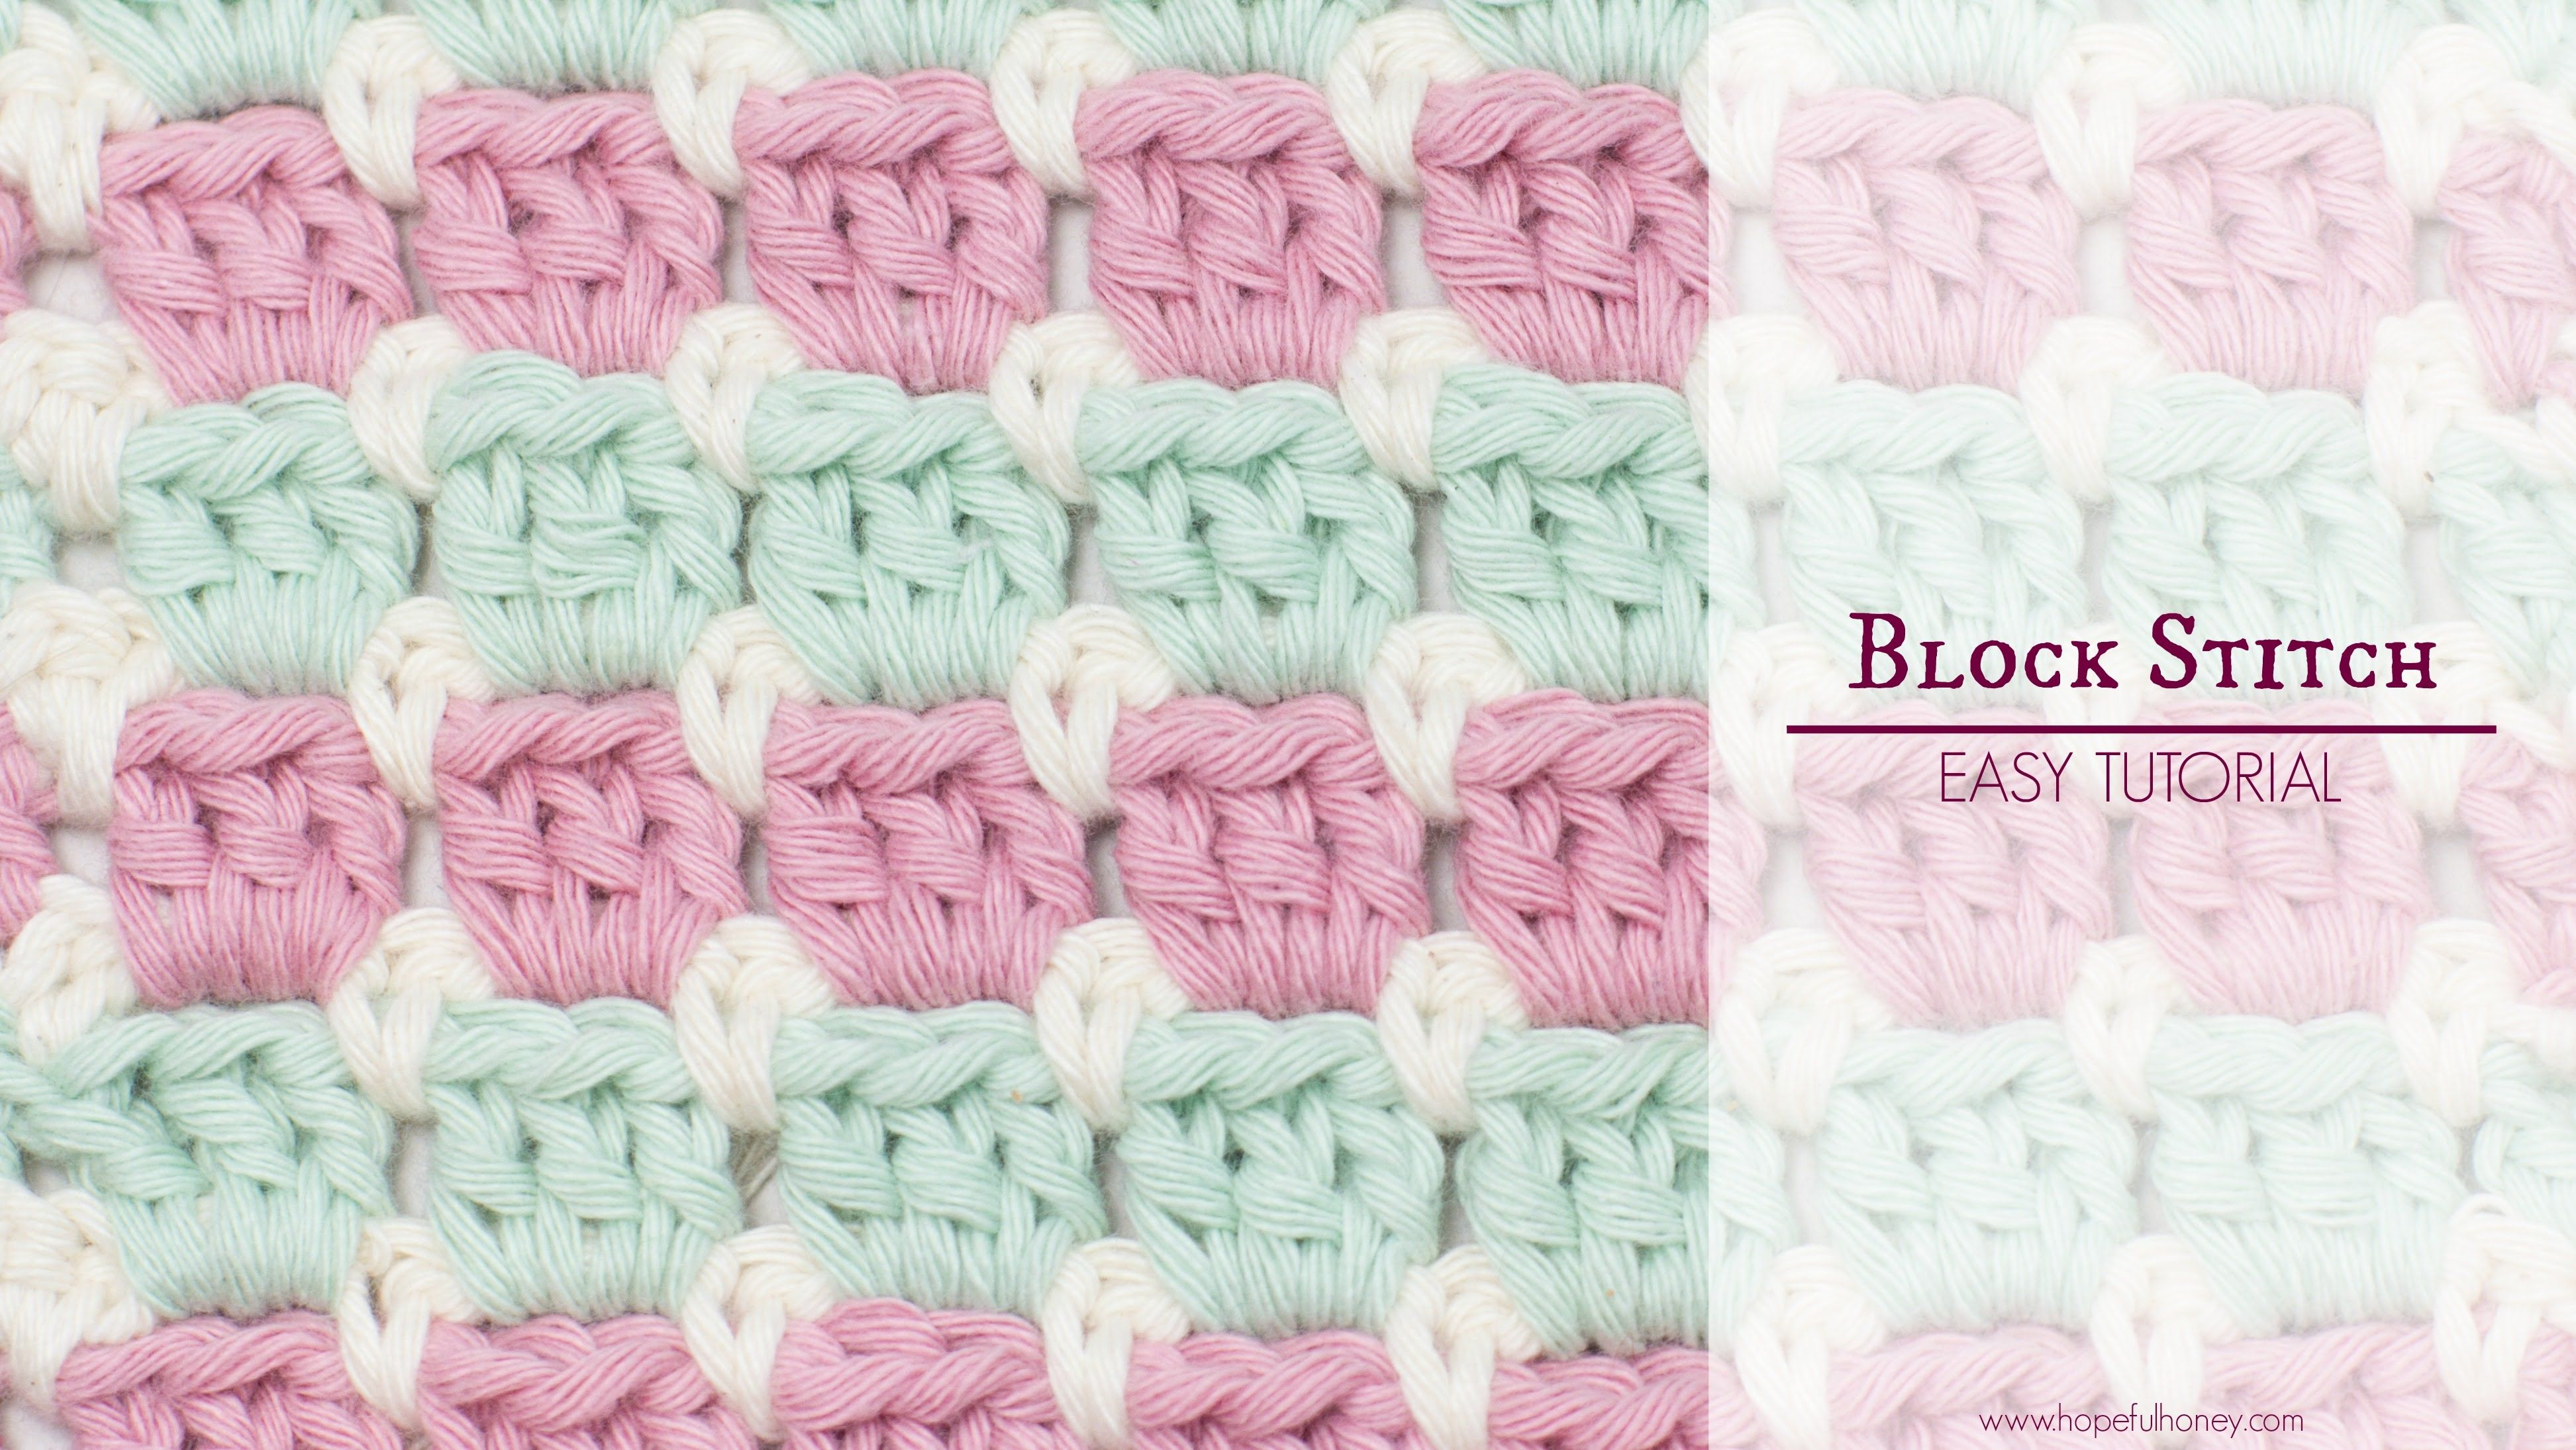 How to crochet the block stitch easy tutorial crochet stitch learn how to crochet the block stitch with this easy video tutorial difficulty level easy colour patterncombination used in video row 1 pink row 2 bankloansurffo Image collections